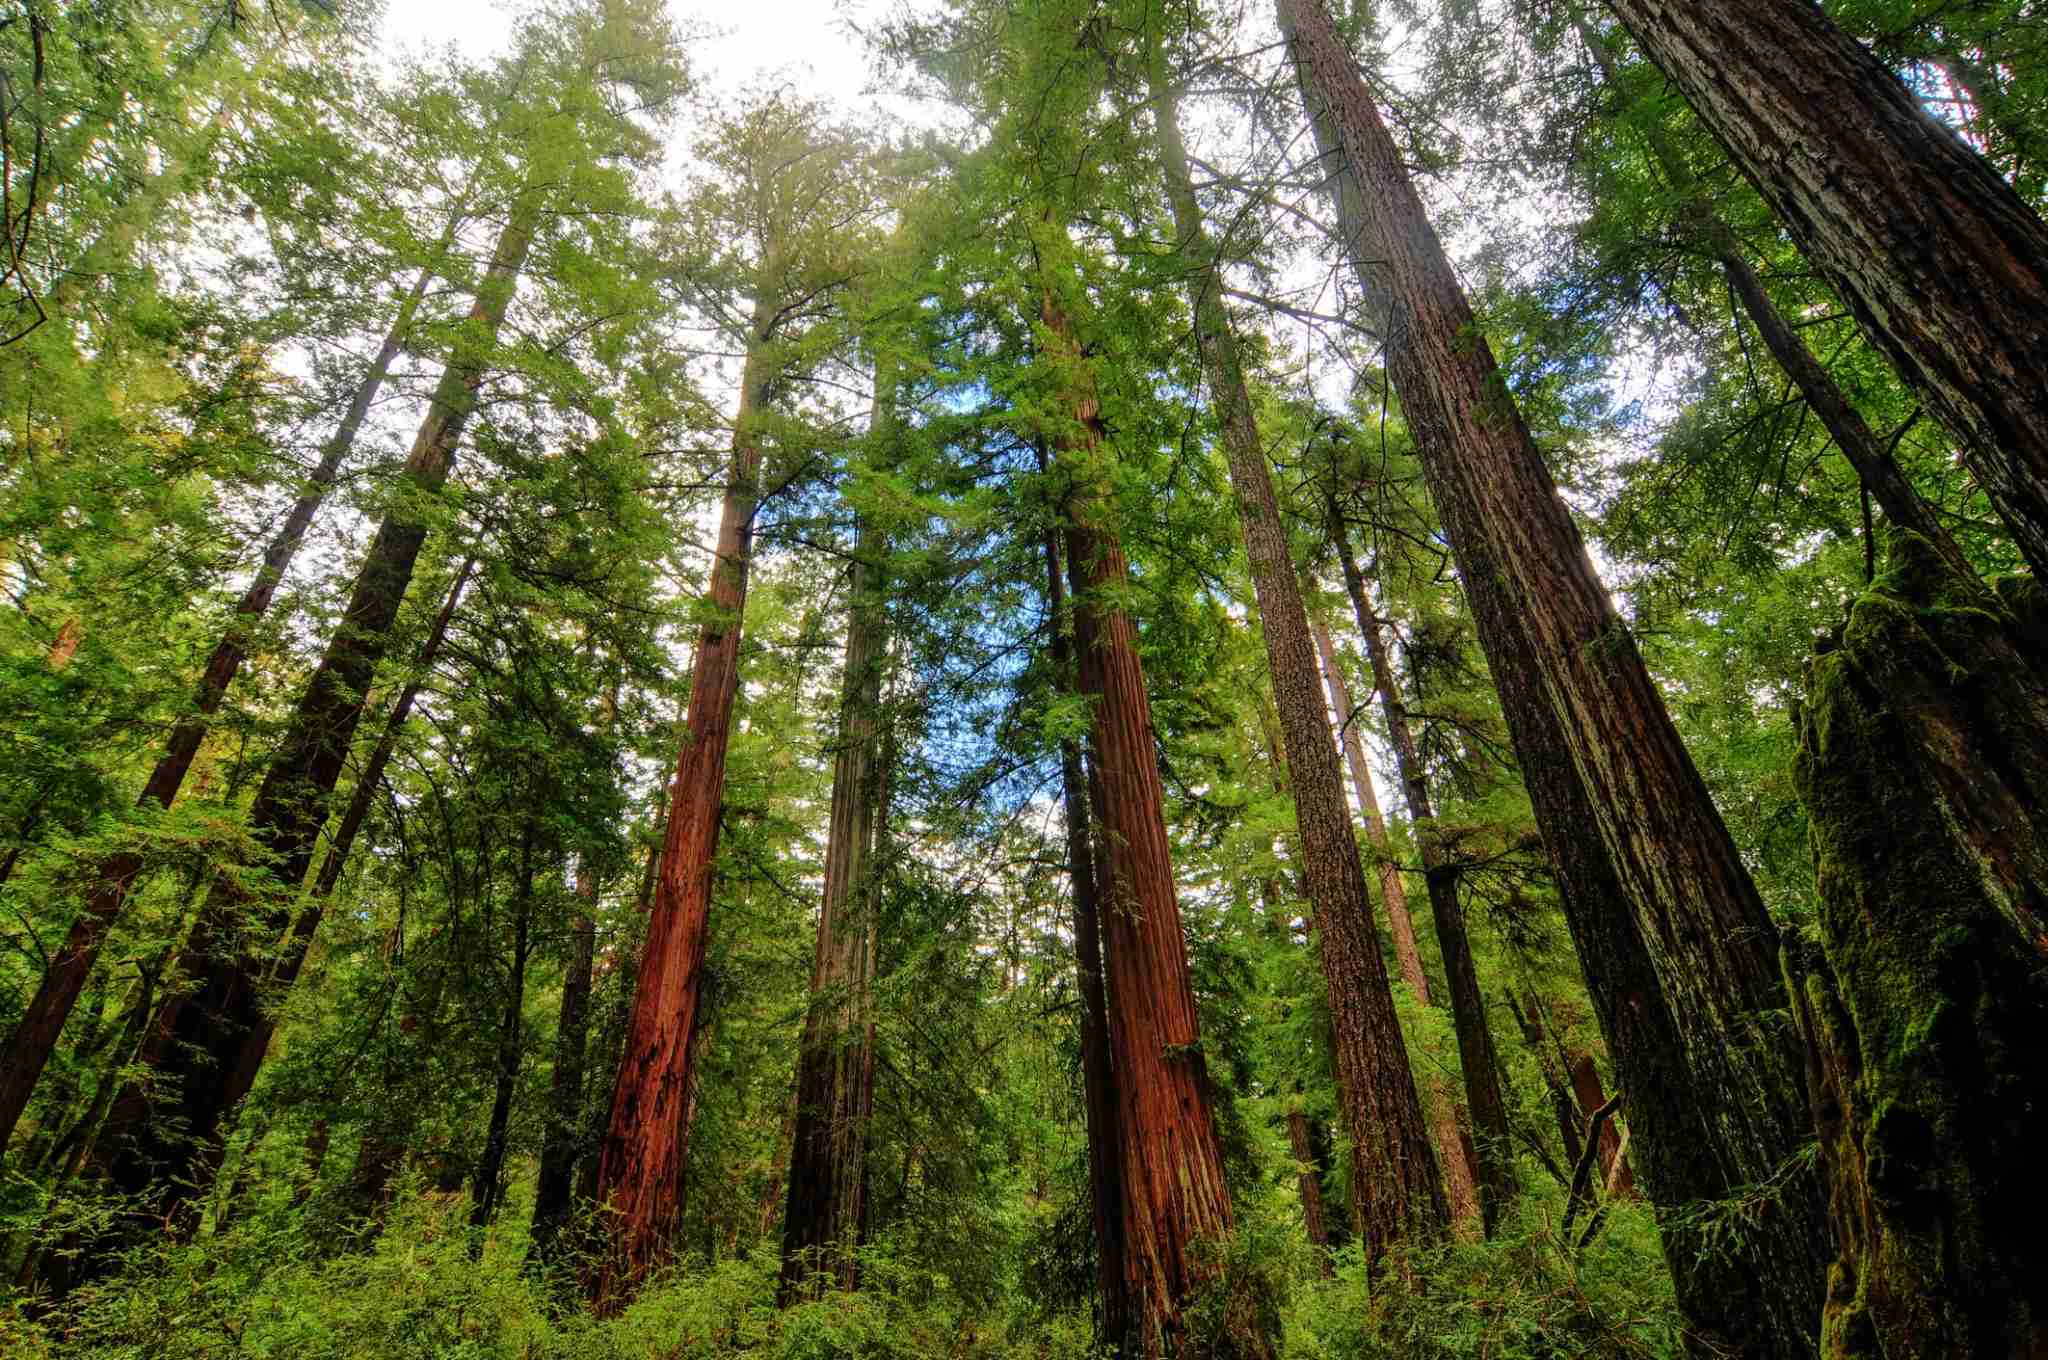 Sequoia trees in Big Basin Redwoods State Park. (Photo by demerzel21/Getty Images)